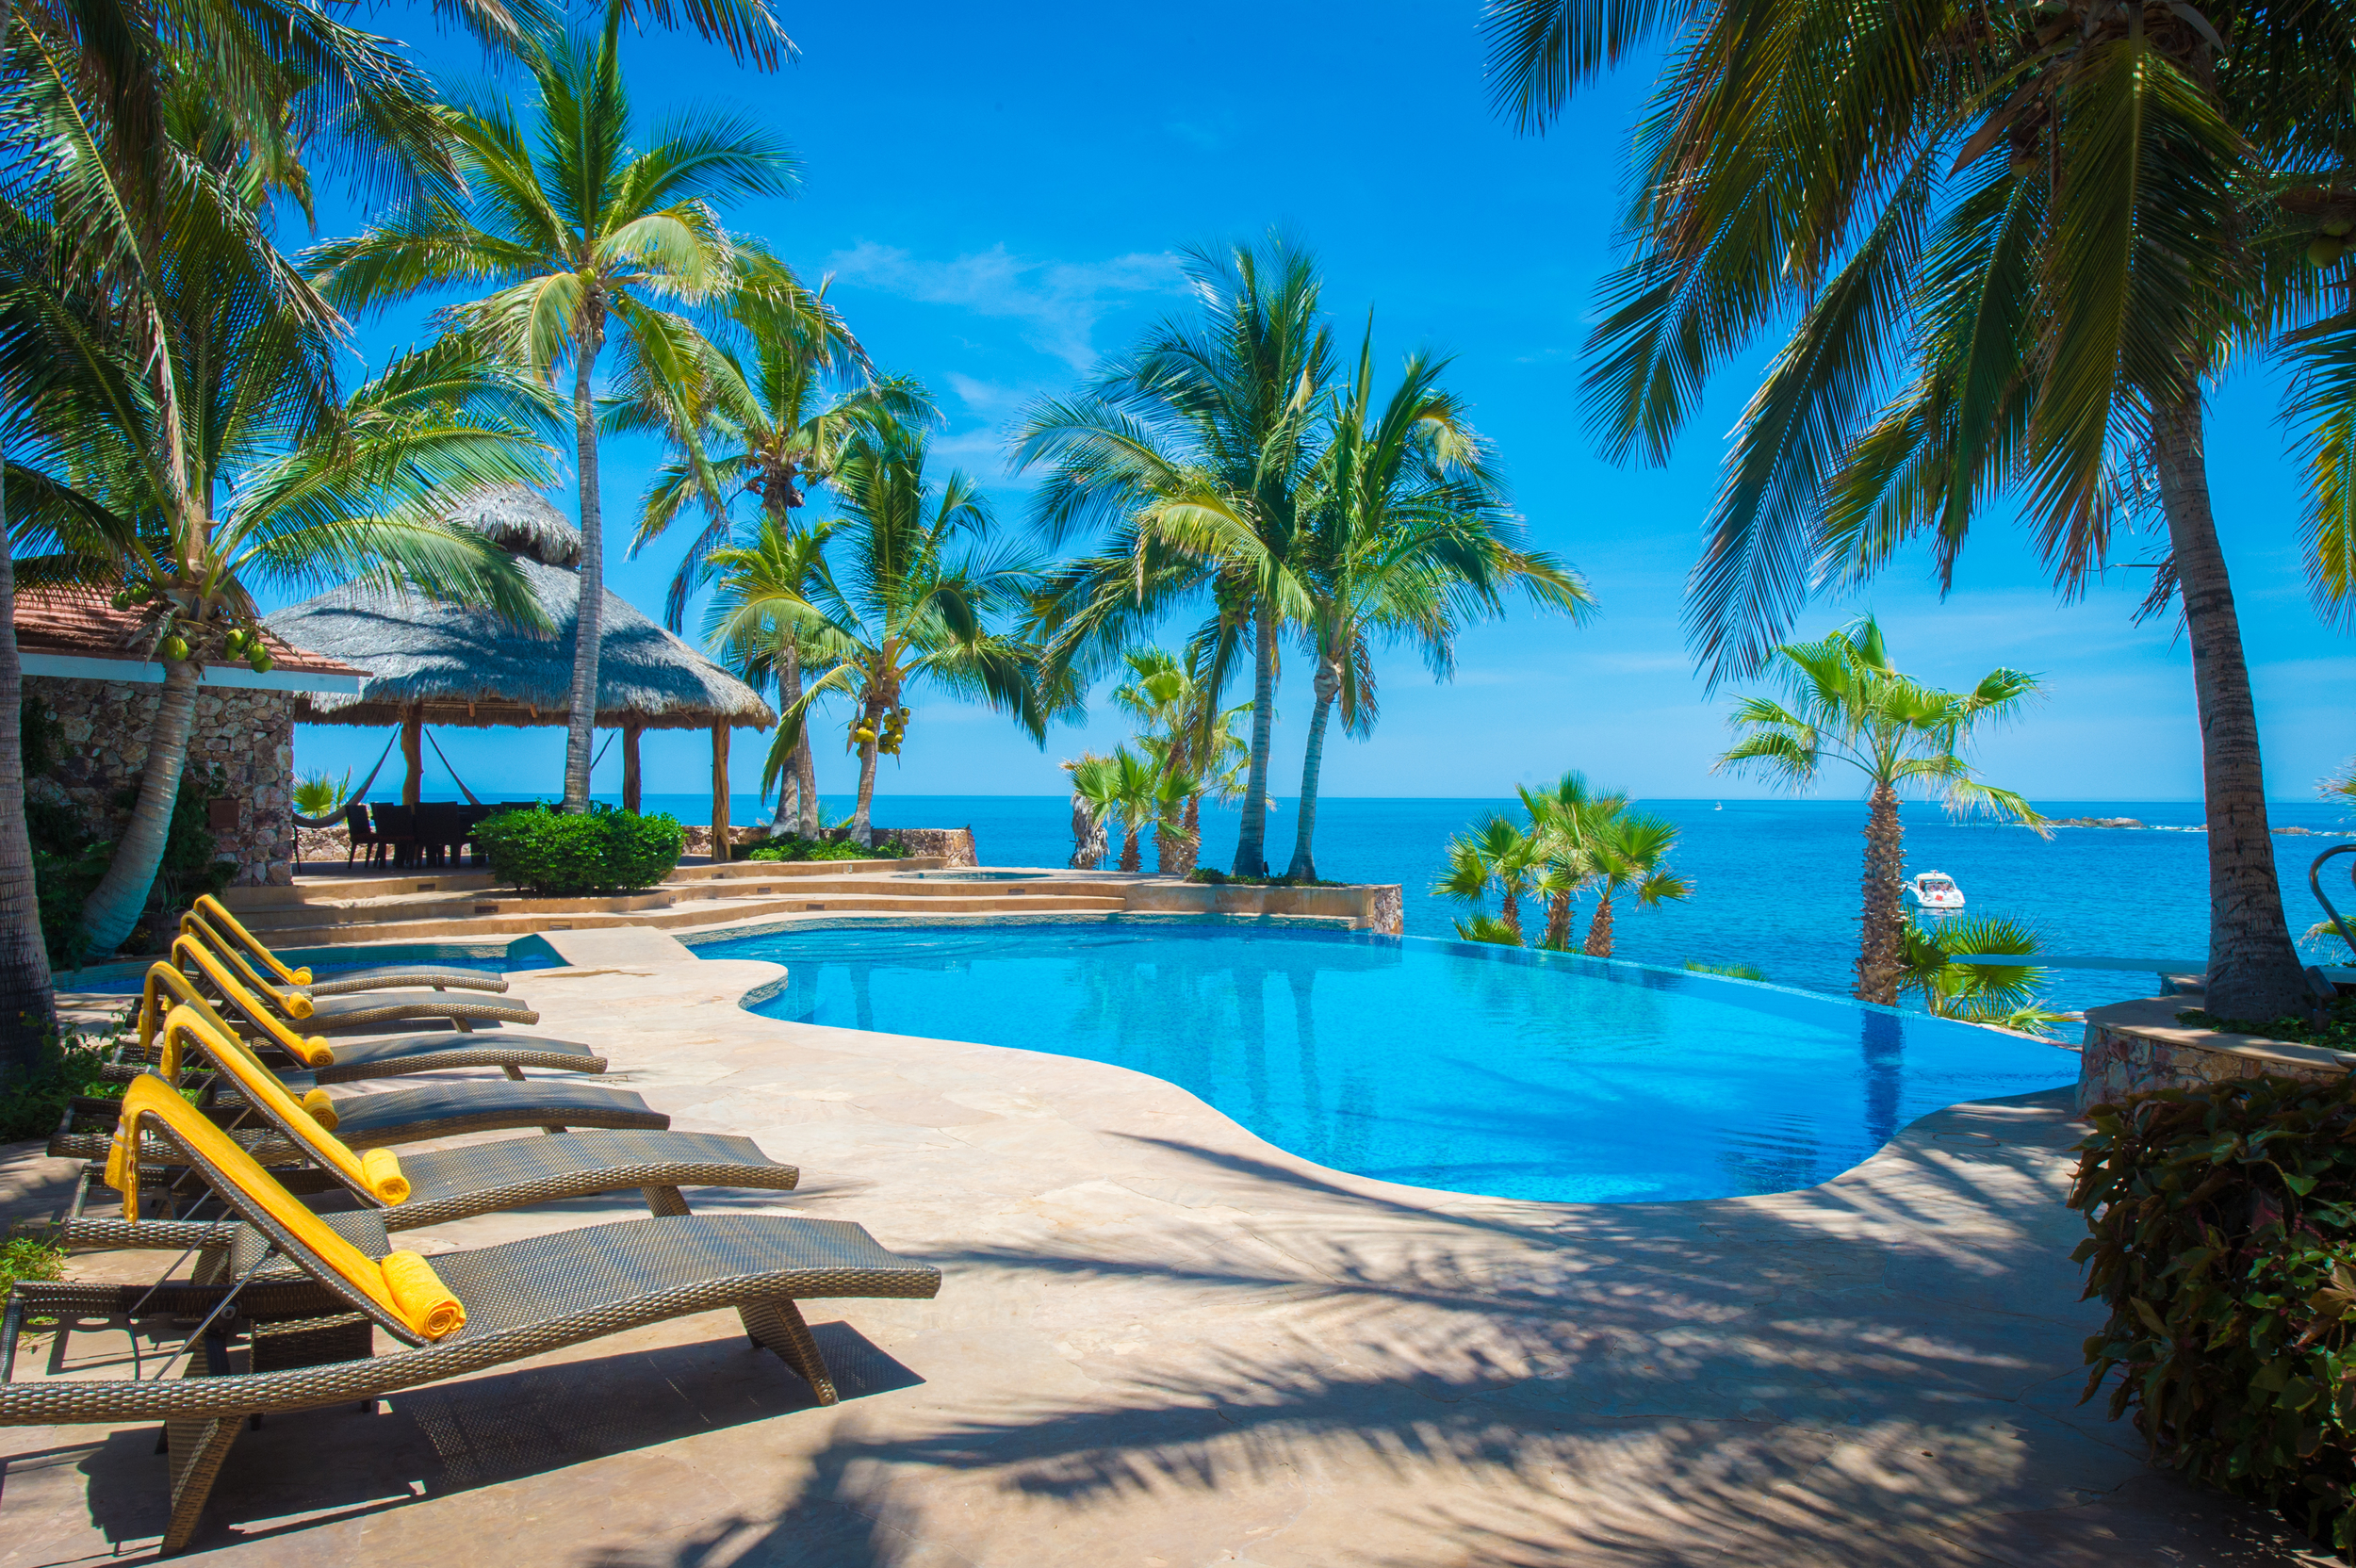 Relax in Paradise    Book one of our private villa services       Services